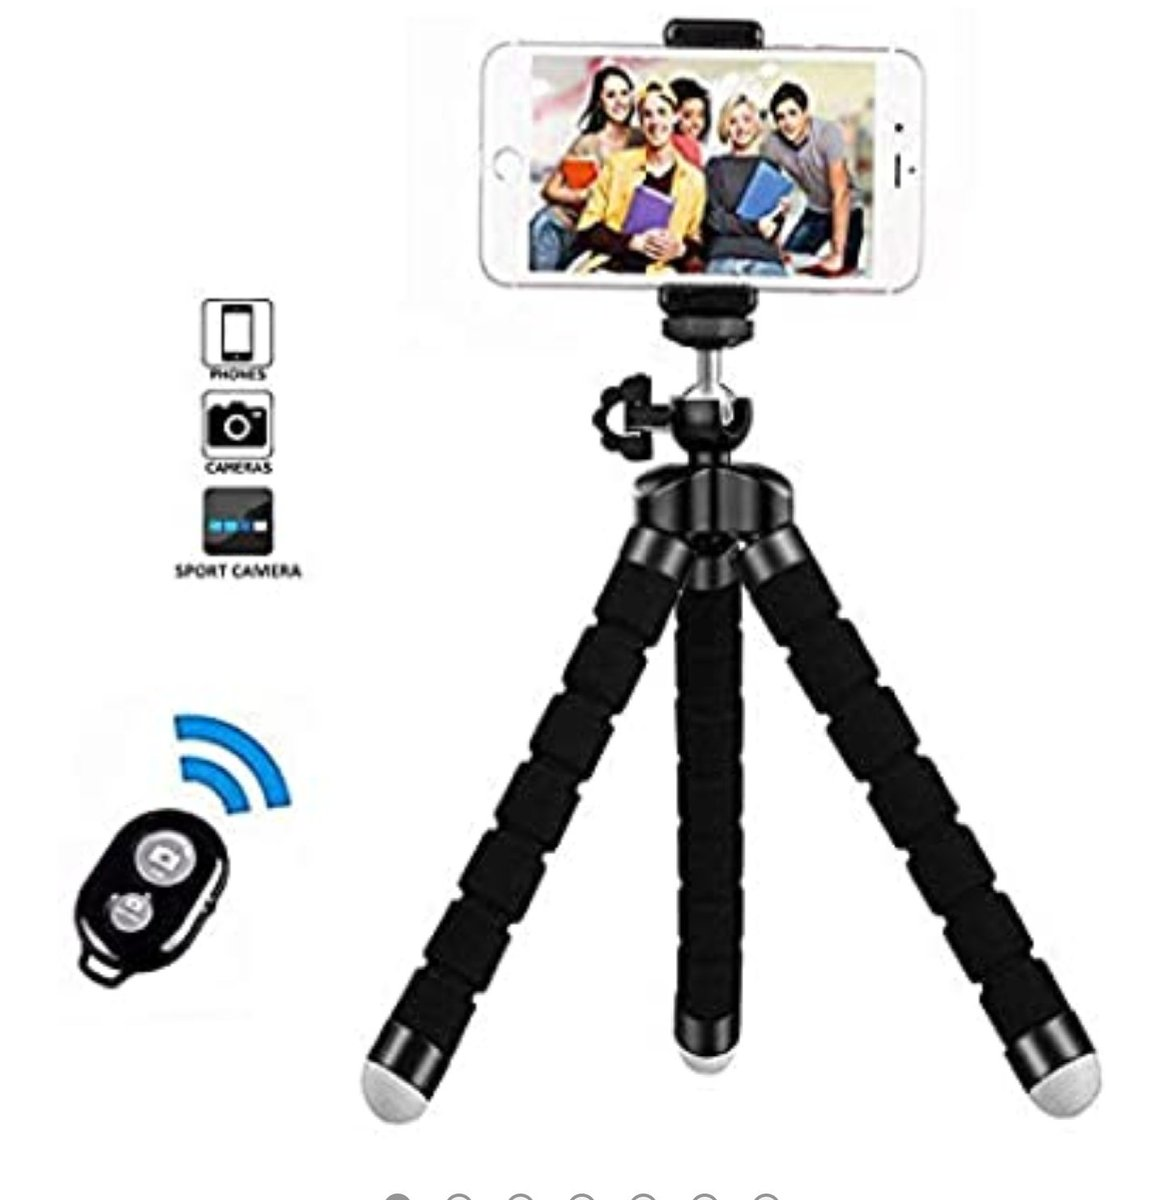 MINI TRIPOD FOR MOBILE. FREE FOR UK. Refund After REVIEW LIVE .  PM FOR ORDER. #amazonreviews #amazonreviewer #amazonseller #amazonreview  #freeproductsamples #amazonfreebies #productreview #UKREVIEWER #reviewers #producttester #freebiehunter #loveforfreestuff #vlogsquadpic.twitter.com/vk3upl8yEr